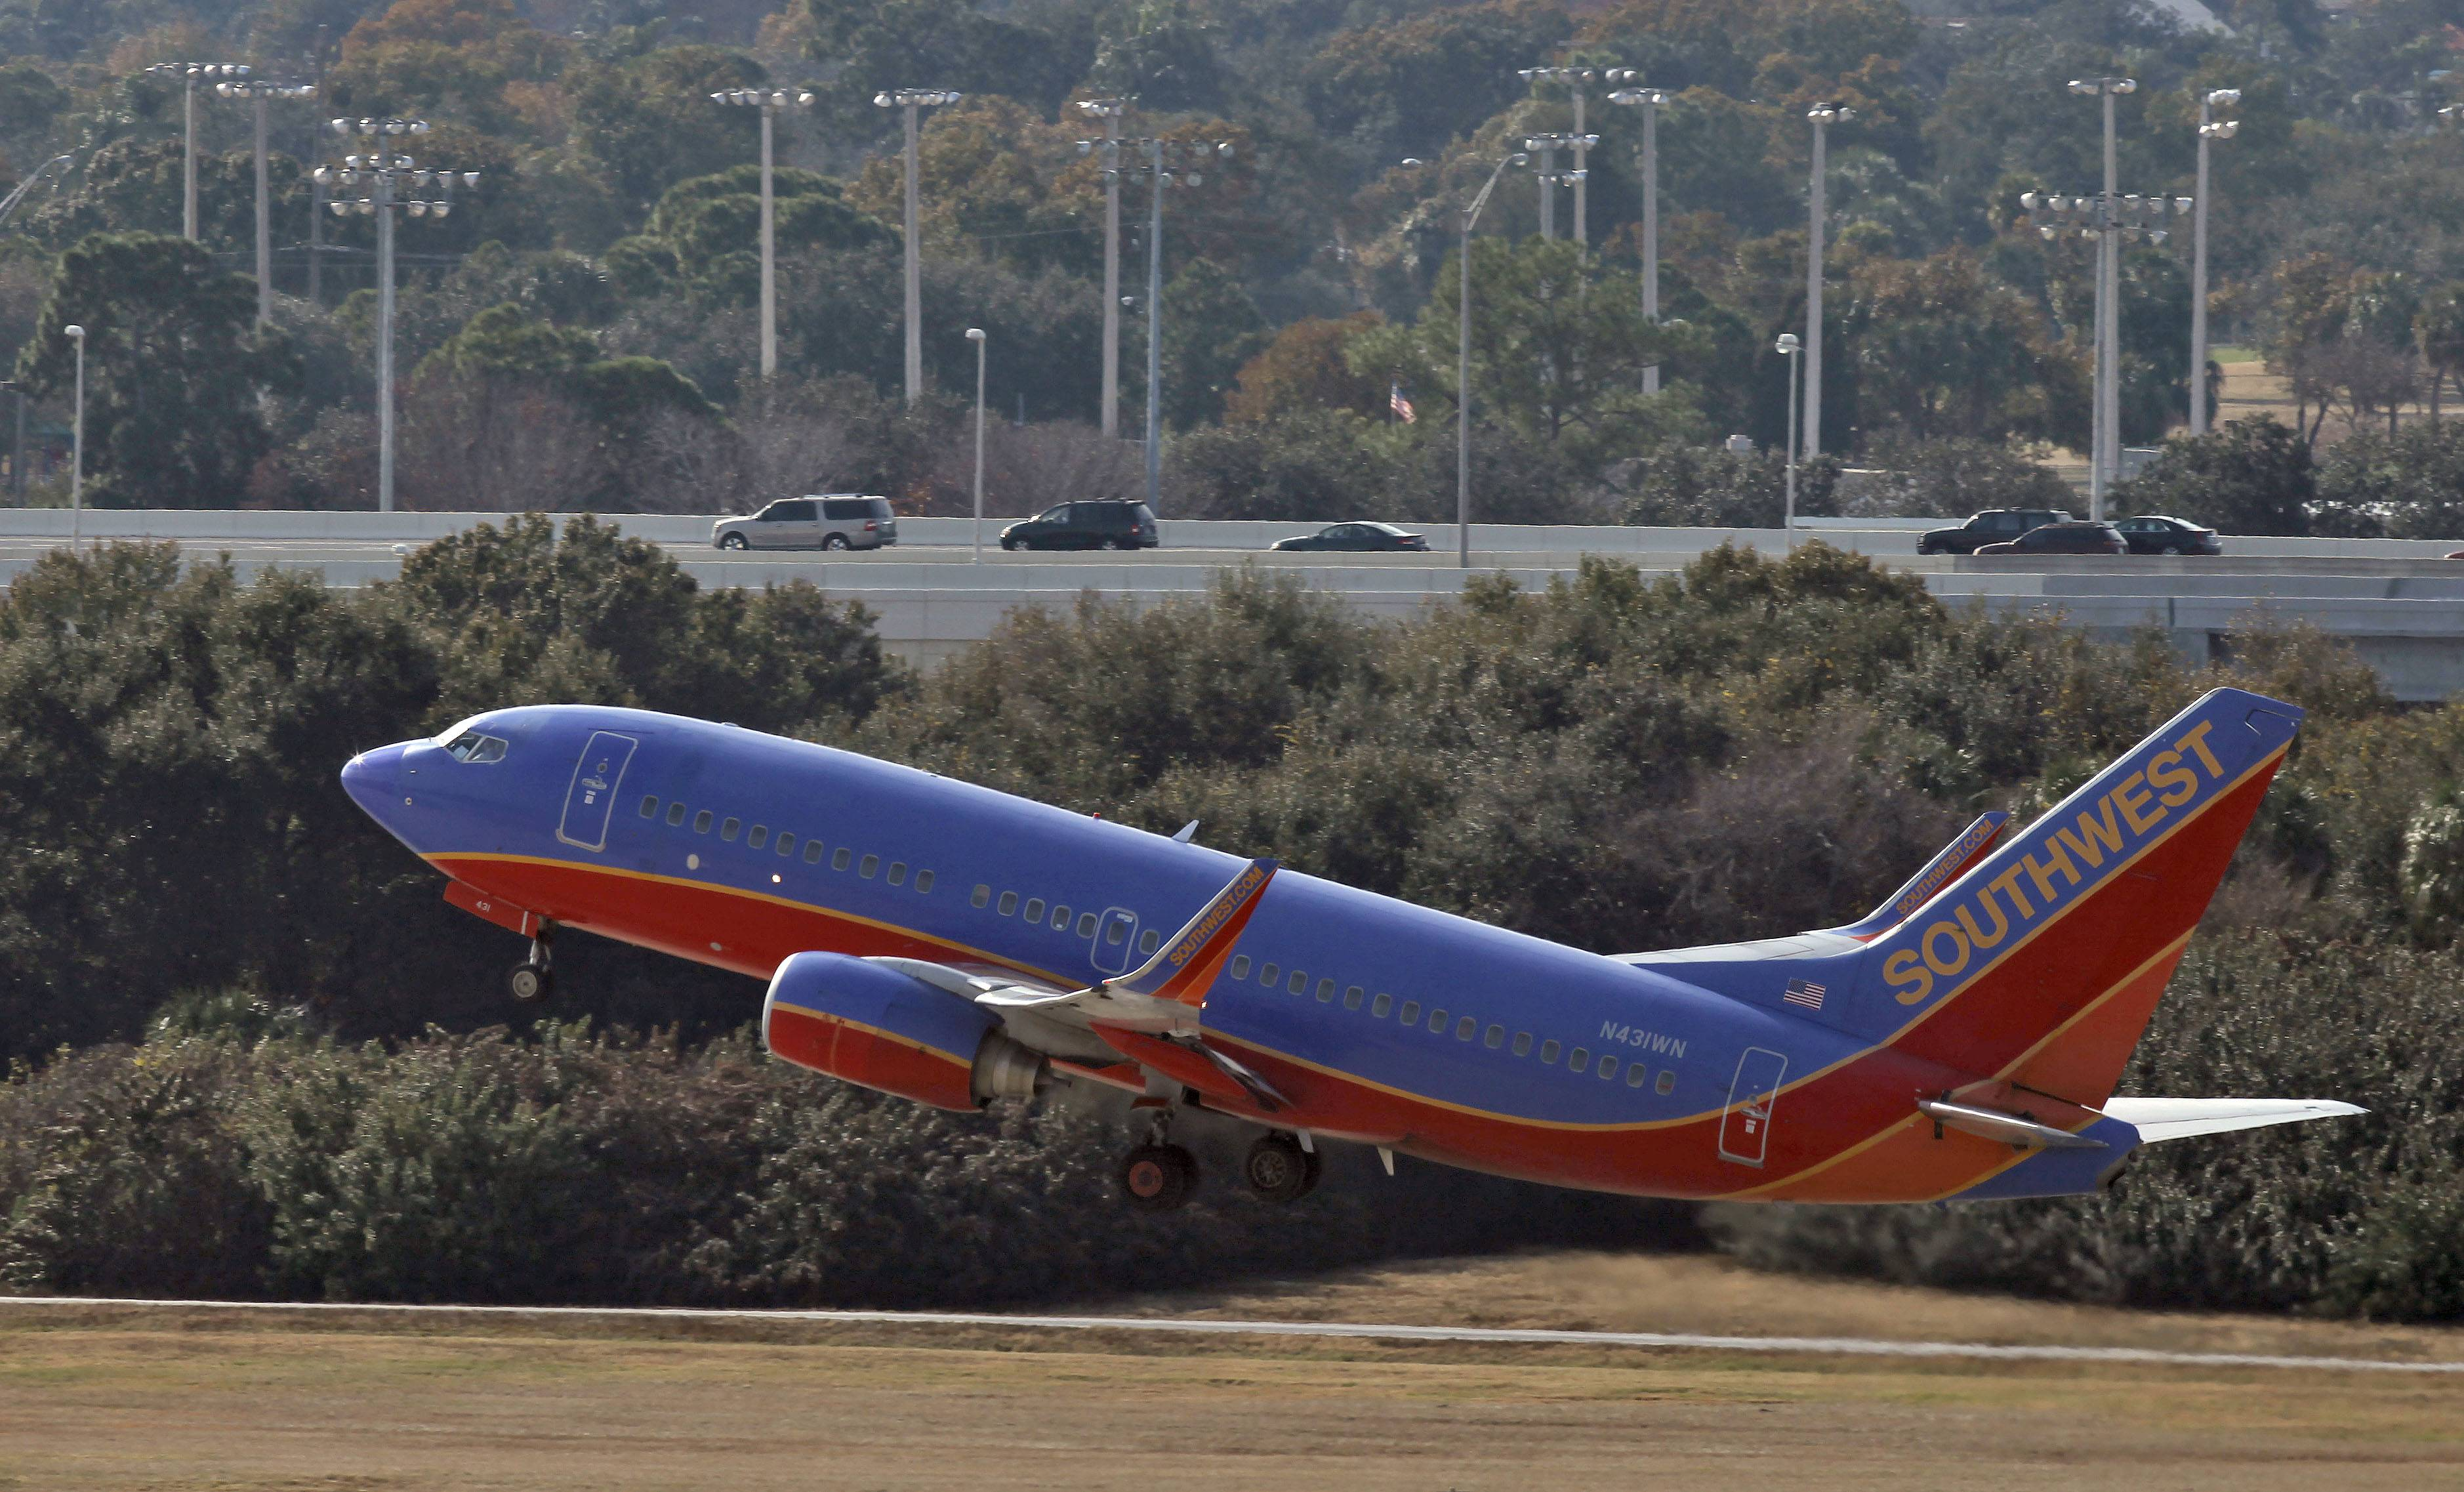 Taking over routes flown by AirTran Airways, Southwest Airlines flew into new territory on Tuesday — Jamaica, the Bahamas and Aruba. Southwest purchased AirTran in 2011.